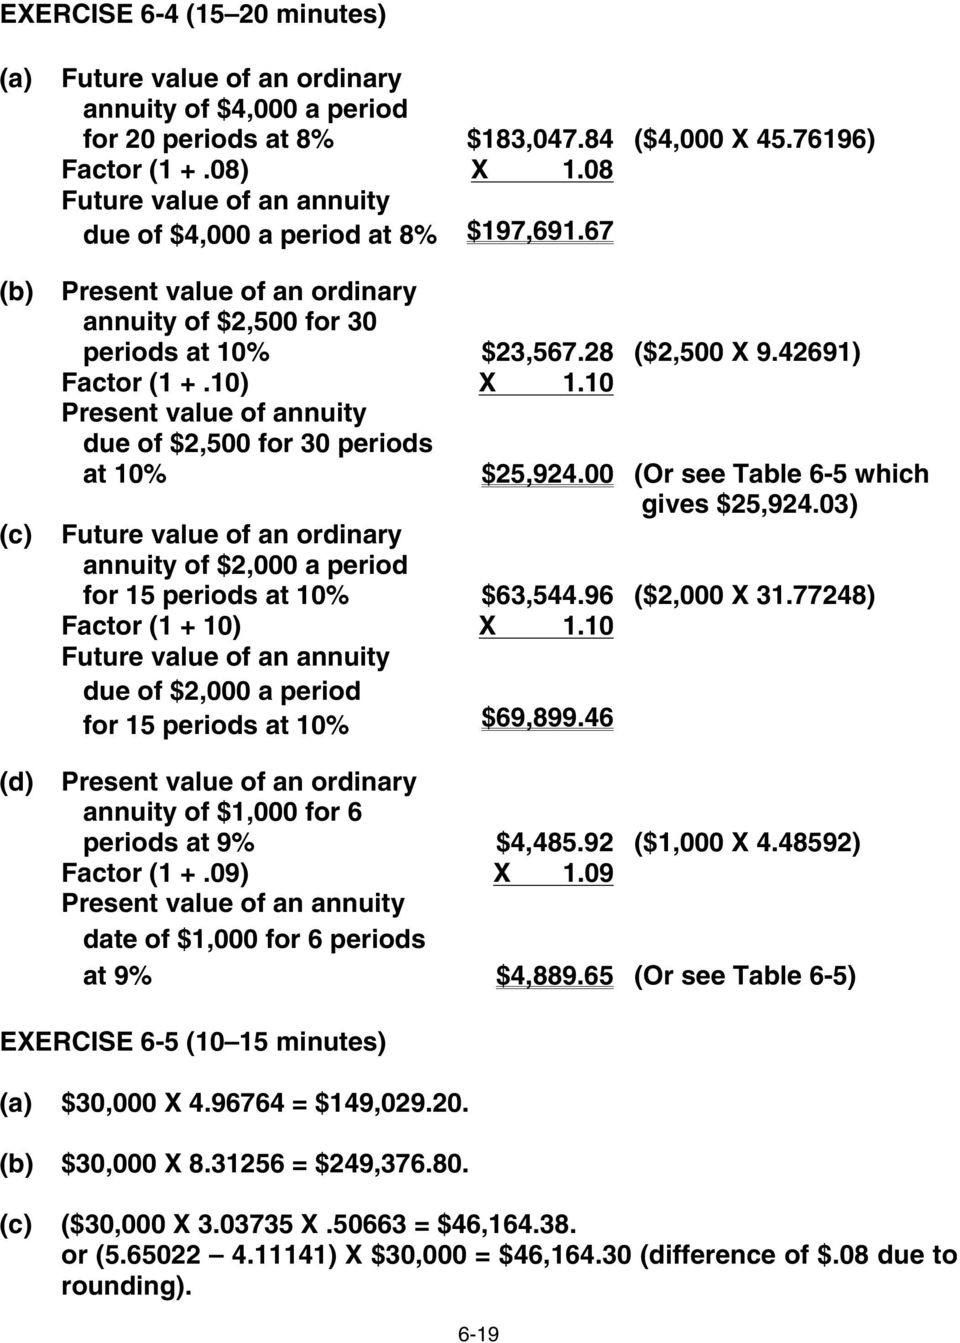 Chapter 6 Accounting And The Time Value Of Money 2 Use Of